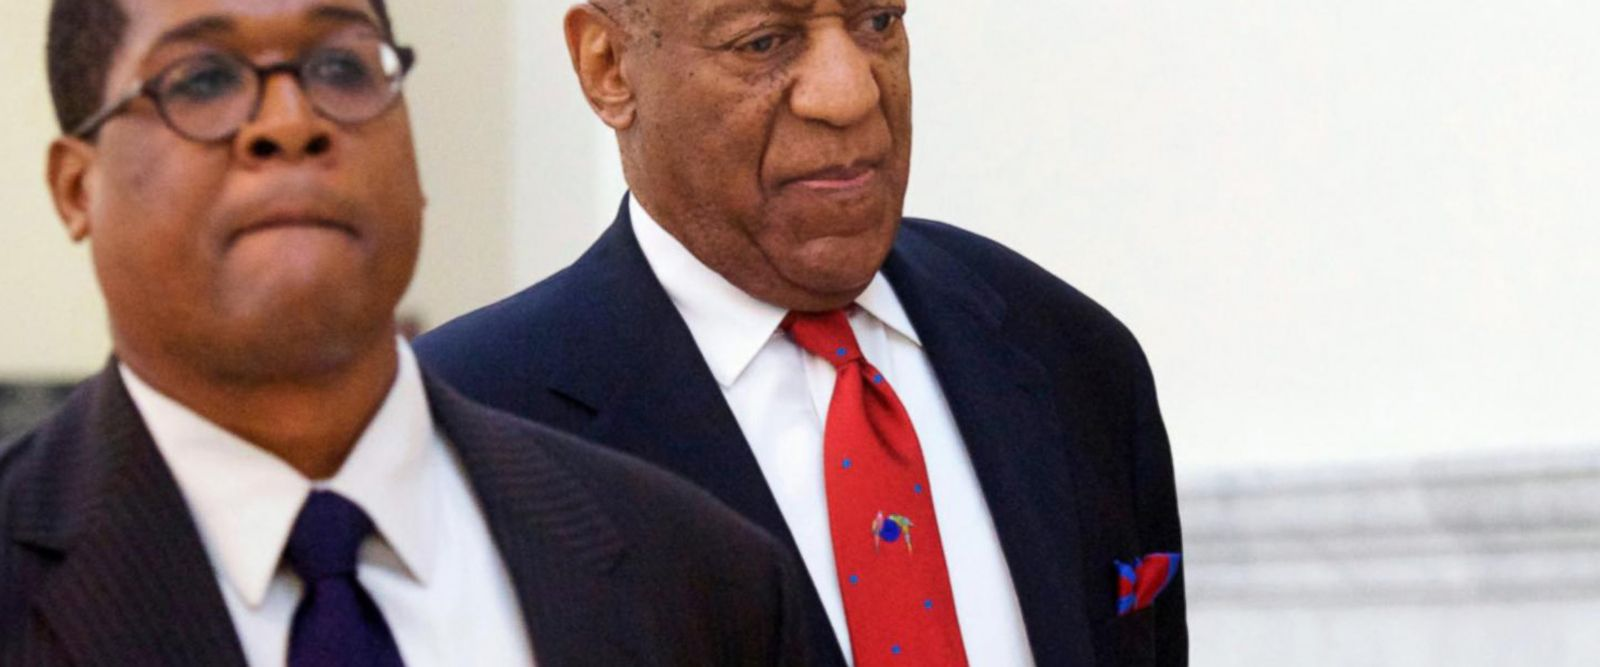 VIDEO: Bill Cosby found guilty on all three felony counts of aggravated indecent assault